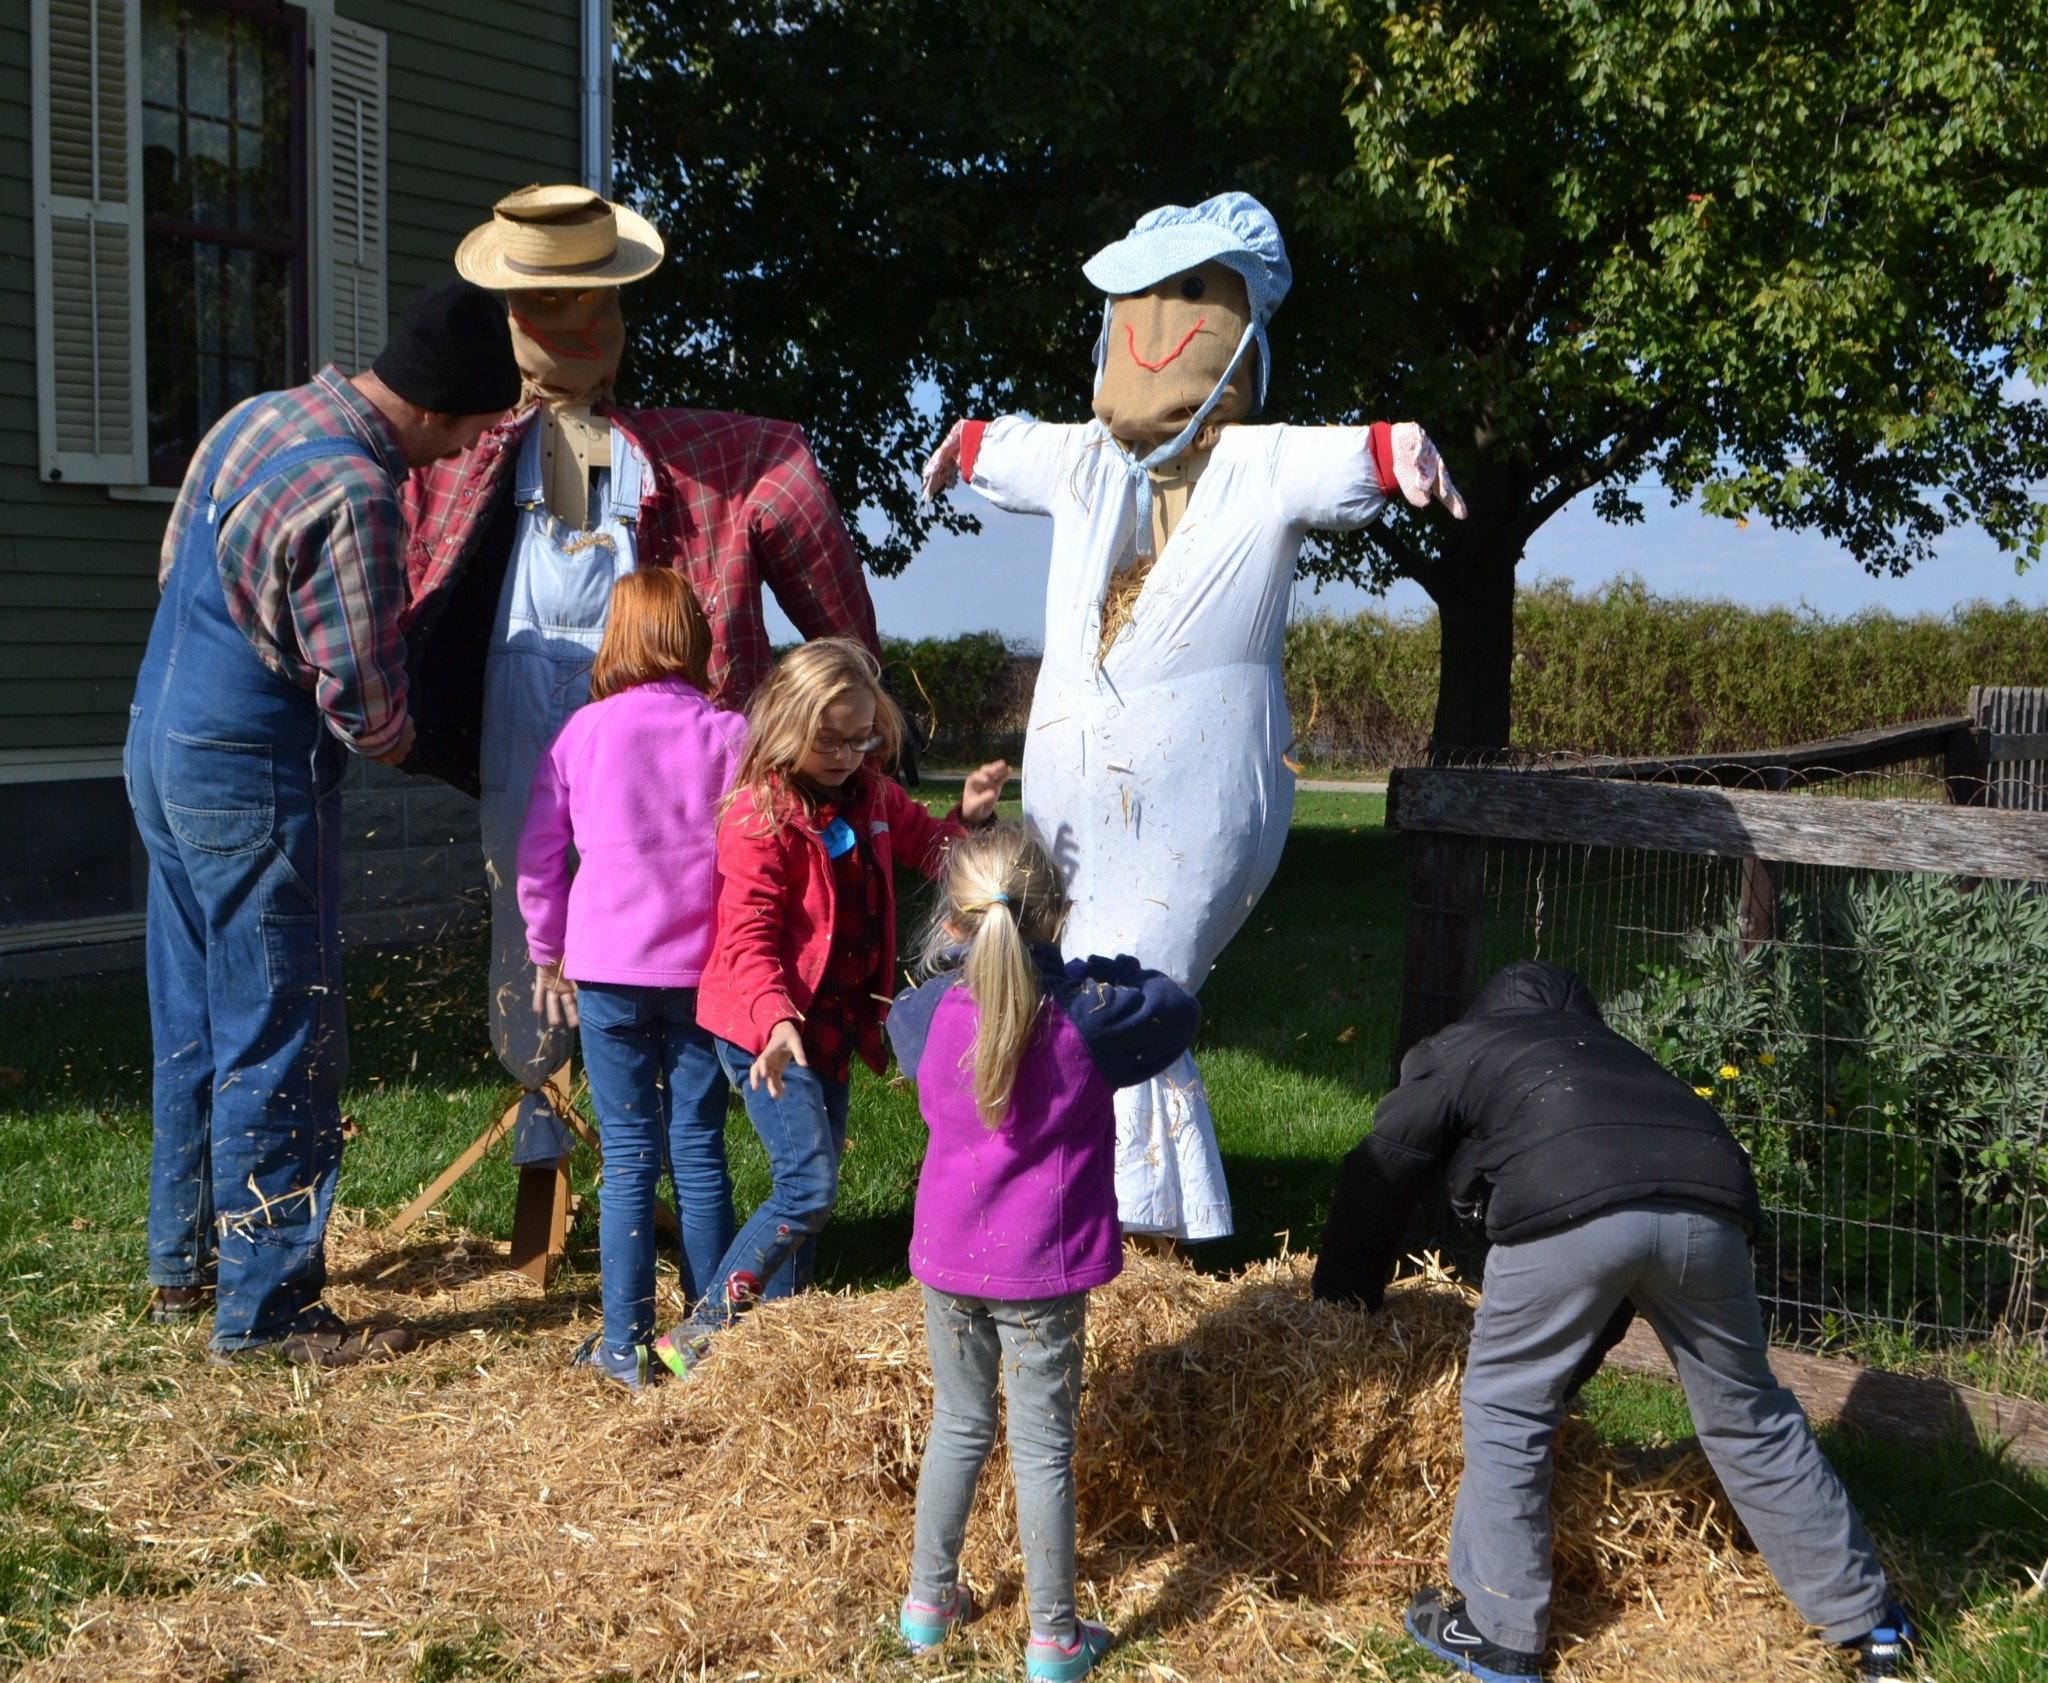 Sauder Village will celebrate Fall on the Farm Oct. 12 with a cornucopia of family-friendly autumn activities. Oct. 12 is also Scout Day, with free admission for Boy and Girl Scouts and American Heritage Girls and Boys. (Submitted photo)